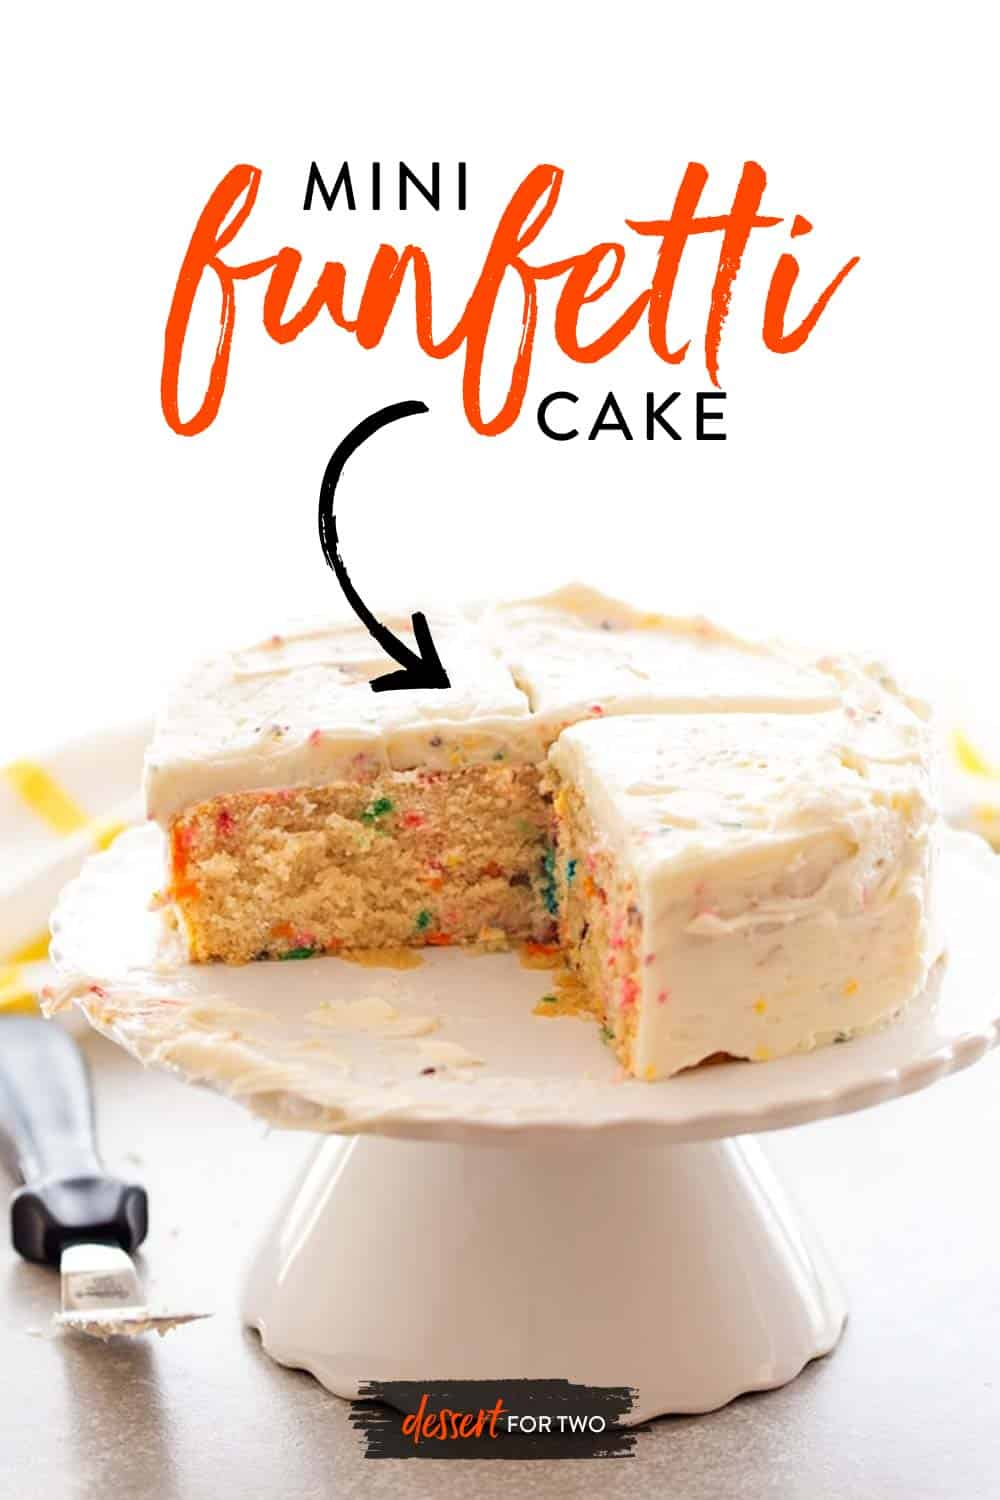 Homemade funfetti cake for two. Mini funfetti cake with sprinkles is so fun for a small cake idea! Small cake recipes and mini cake recipes are so fun!